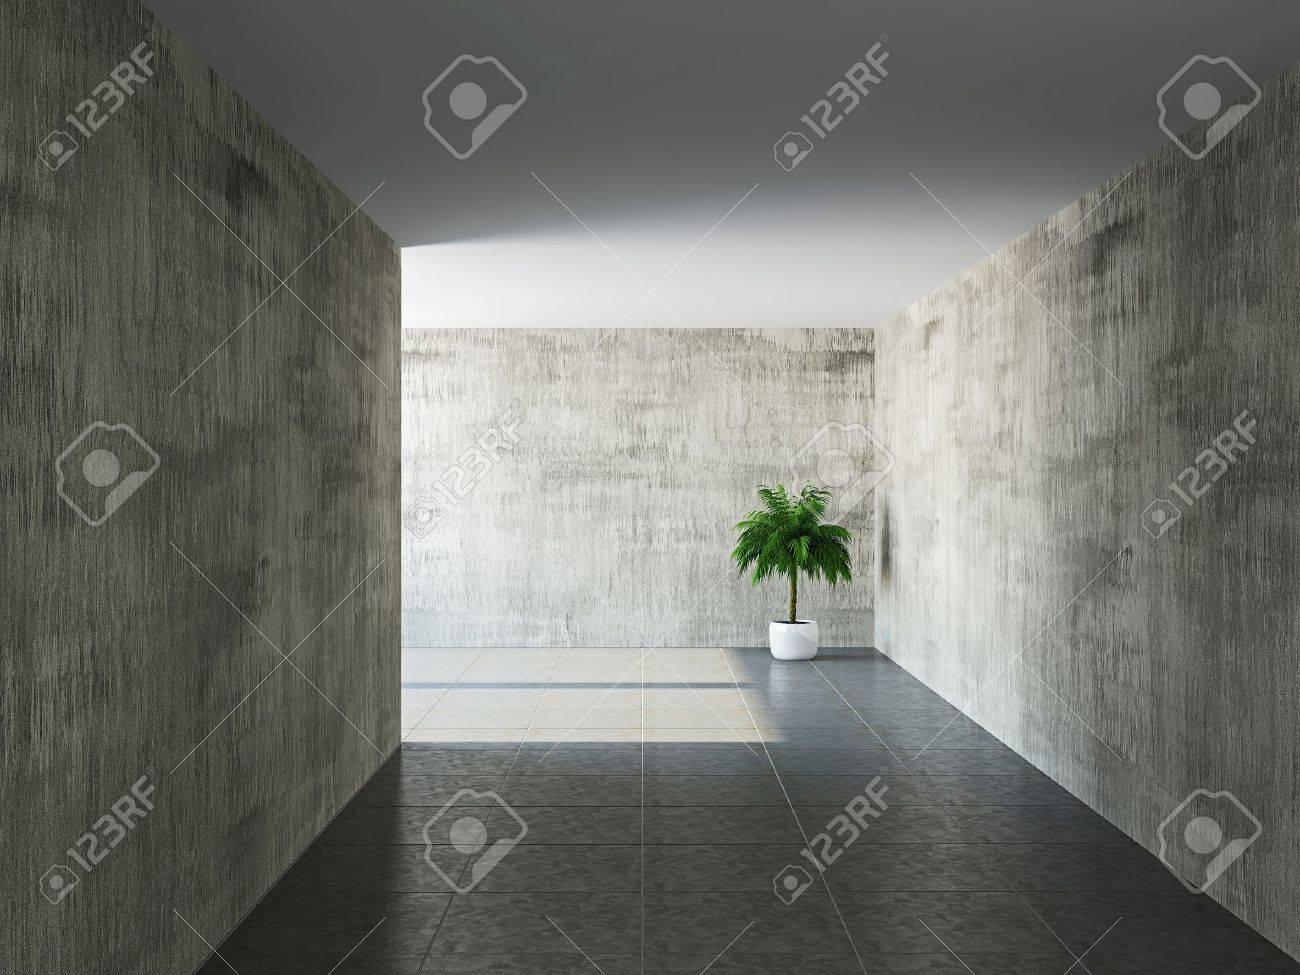 Corridor with old walls and a palm Stock Photo - 19984725